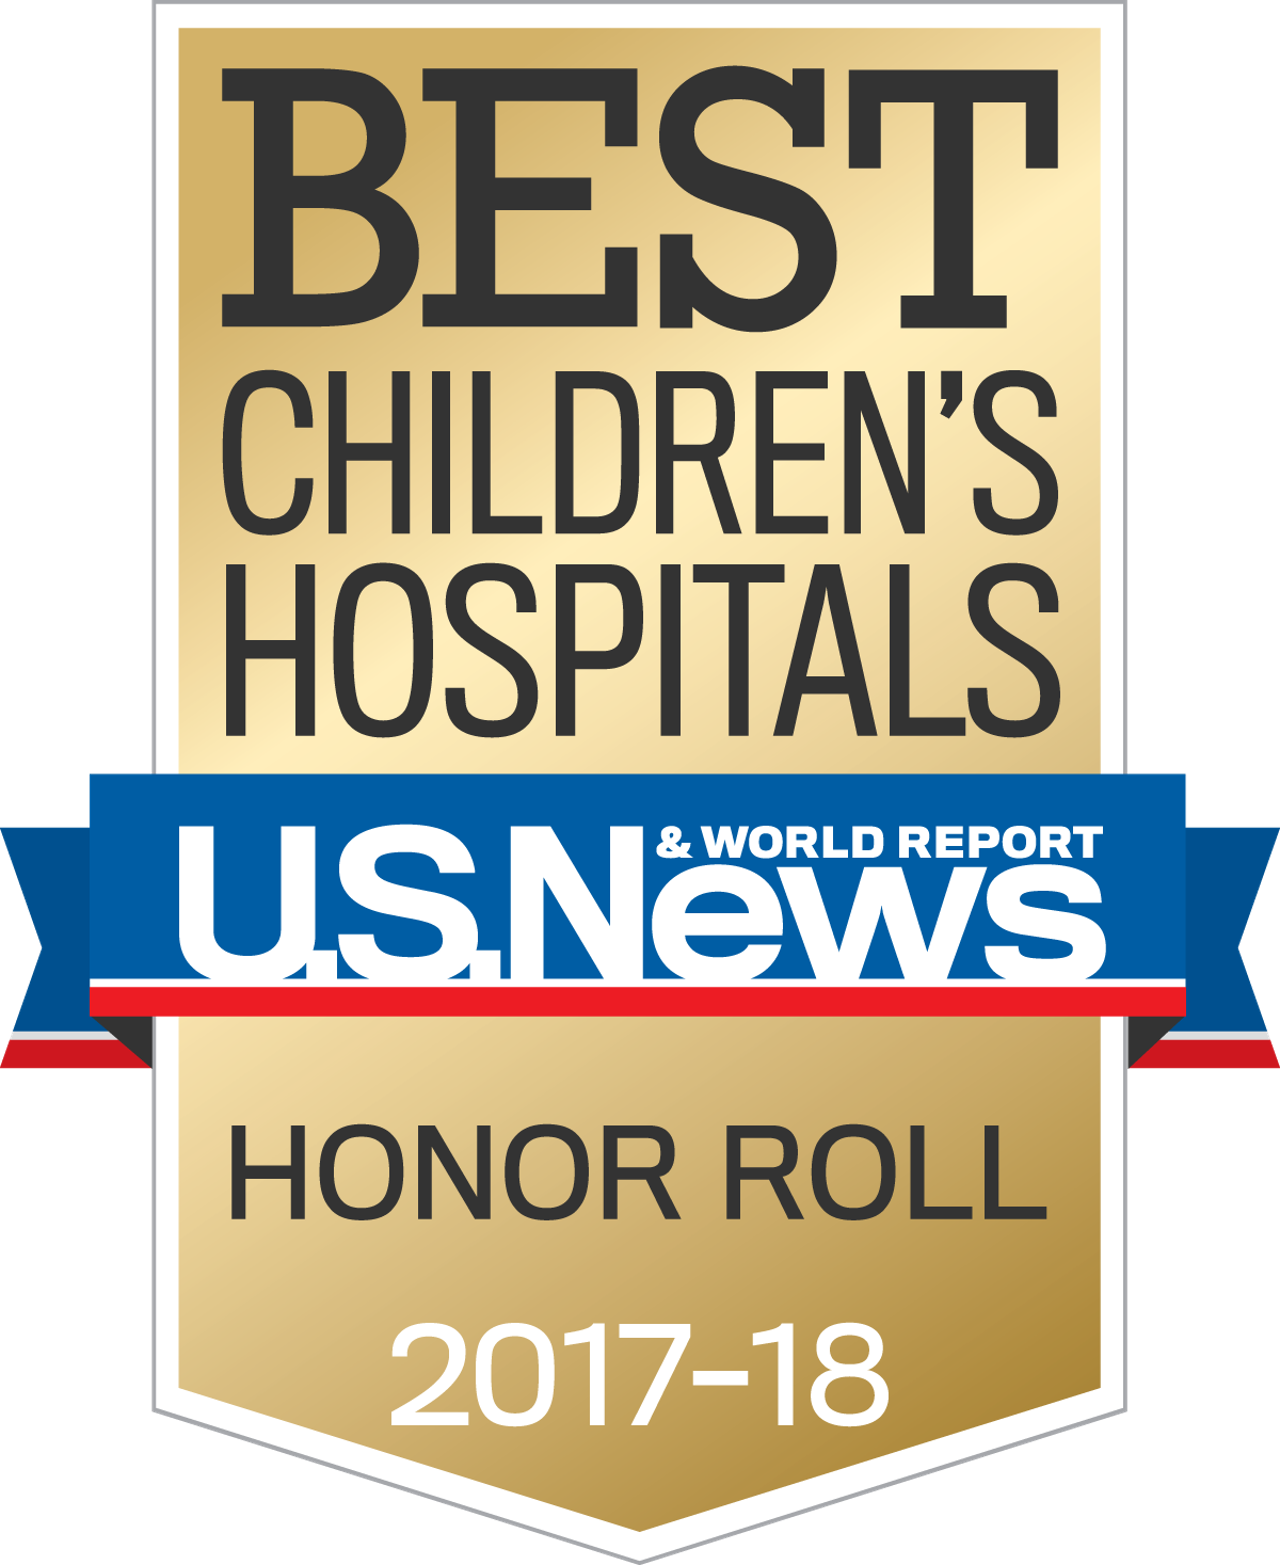 17-18 best-childrens-hospitals-HonorRoll.png